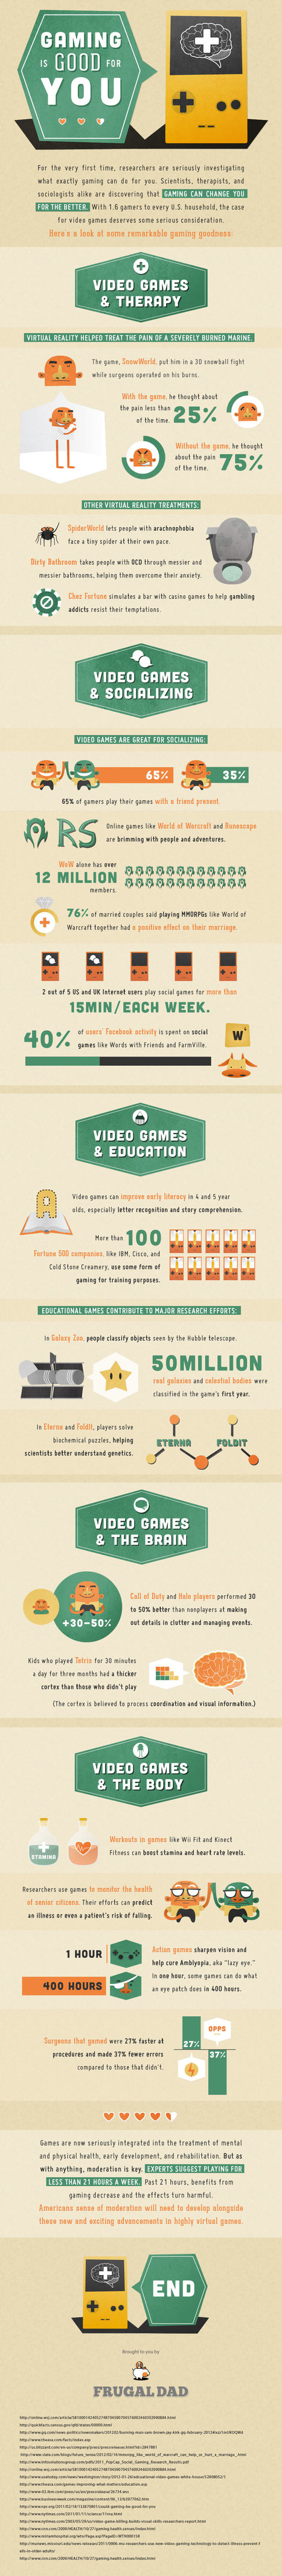 #Gaming is Good for You (Infographic) | Frugal Dad | #games | Technology in the Classroom | Scoop.it